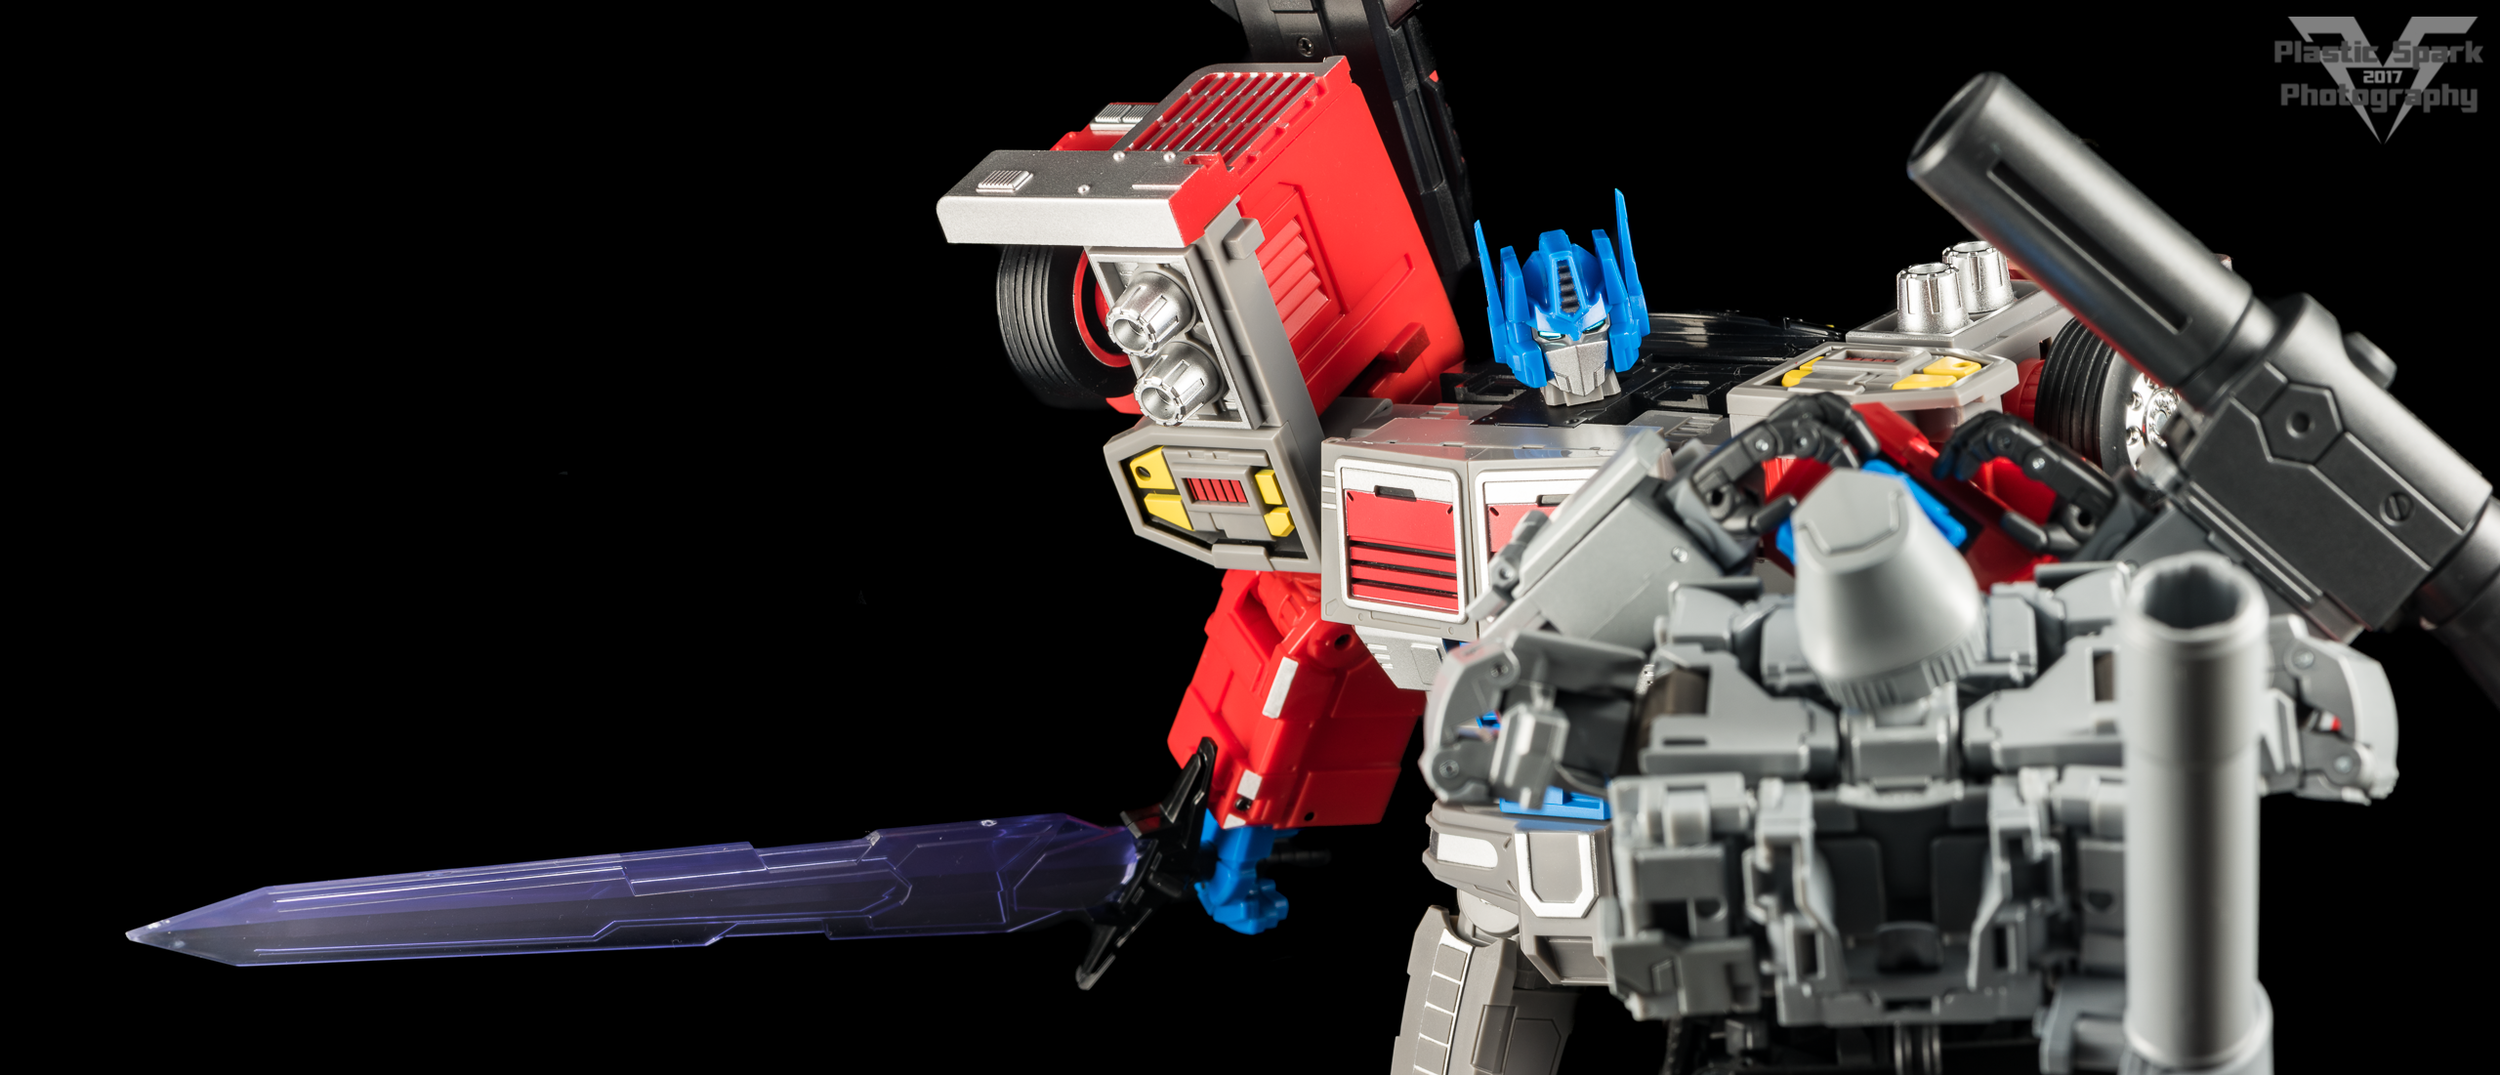 Fans-Hobby-MB-04-Gunfighter-II-(52-of-61).png